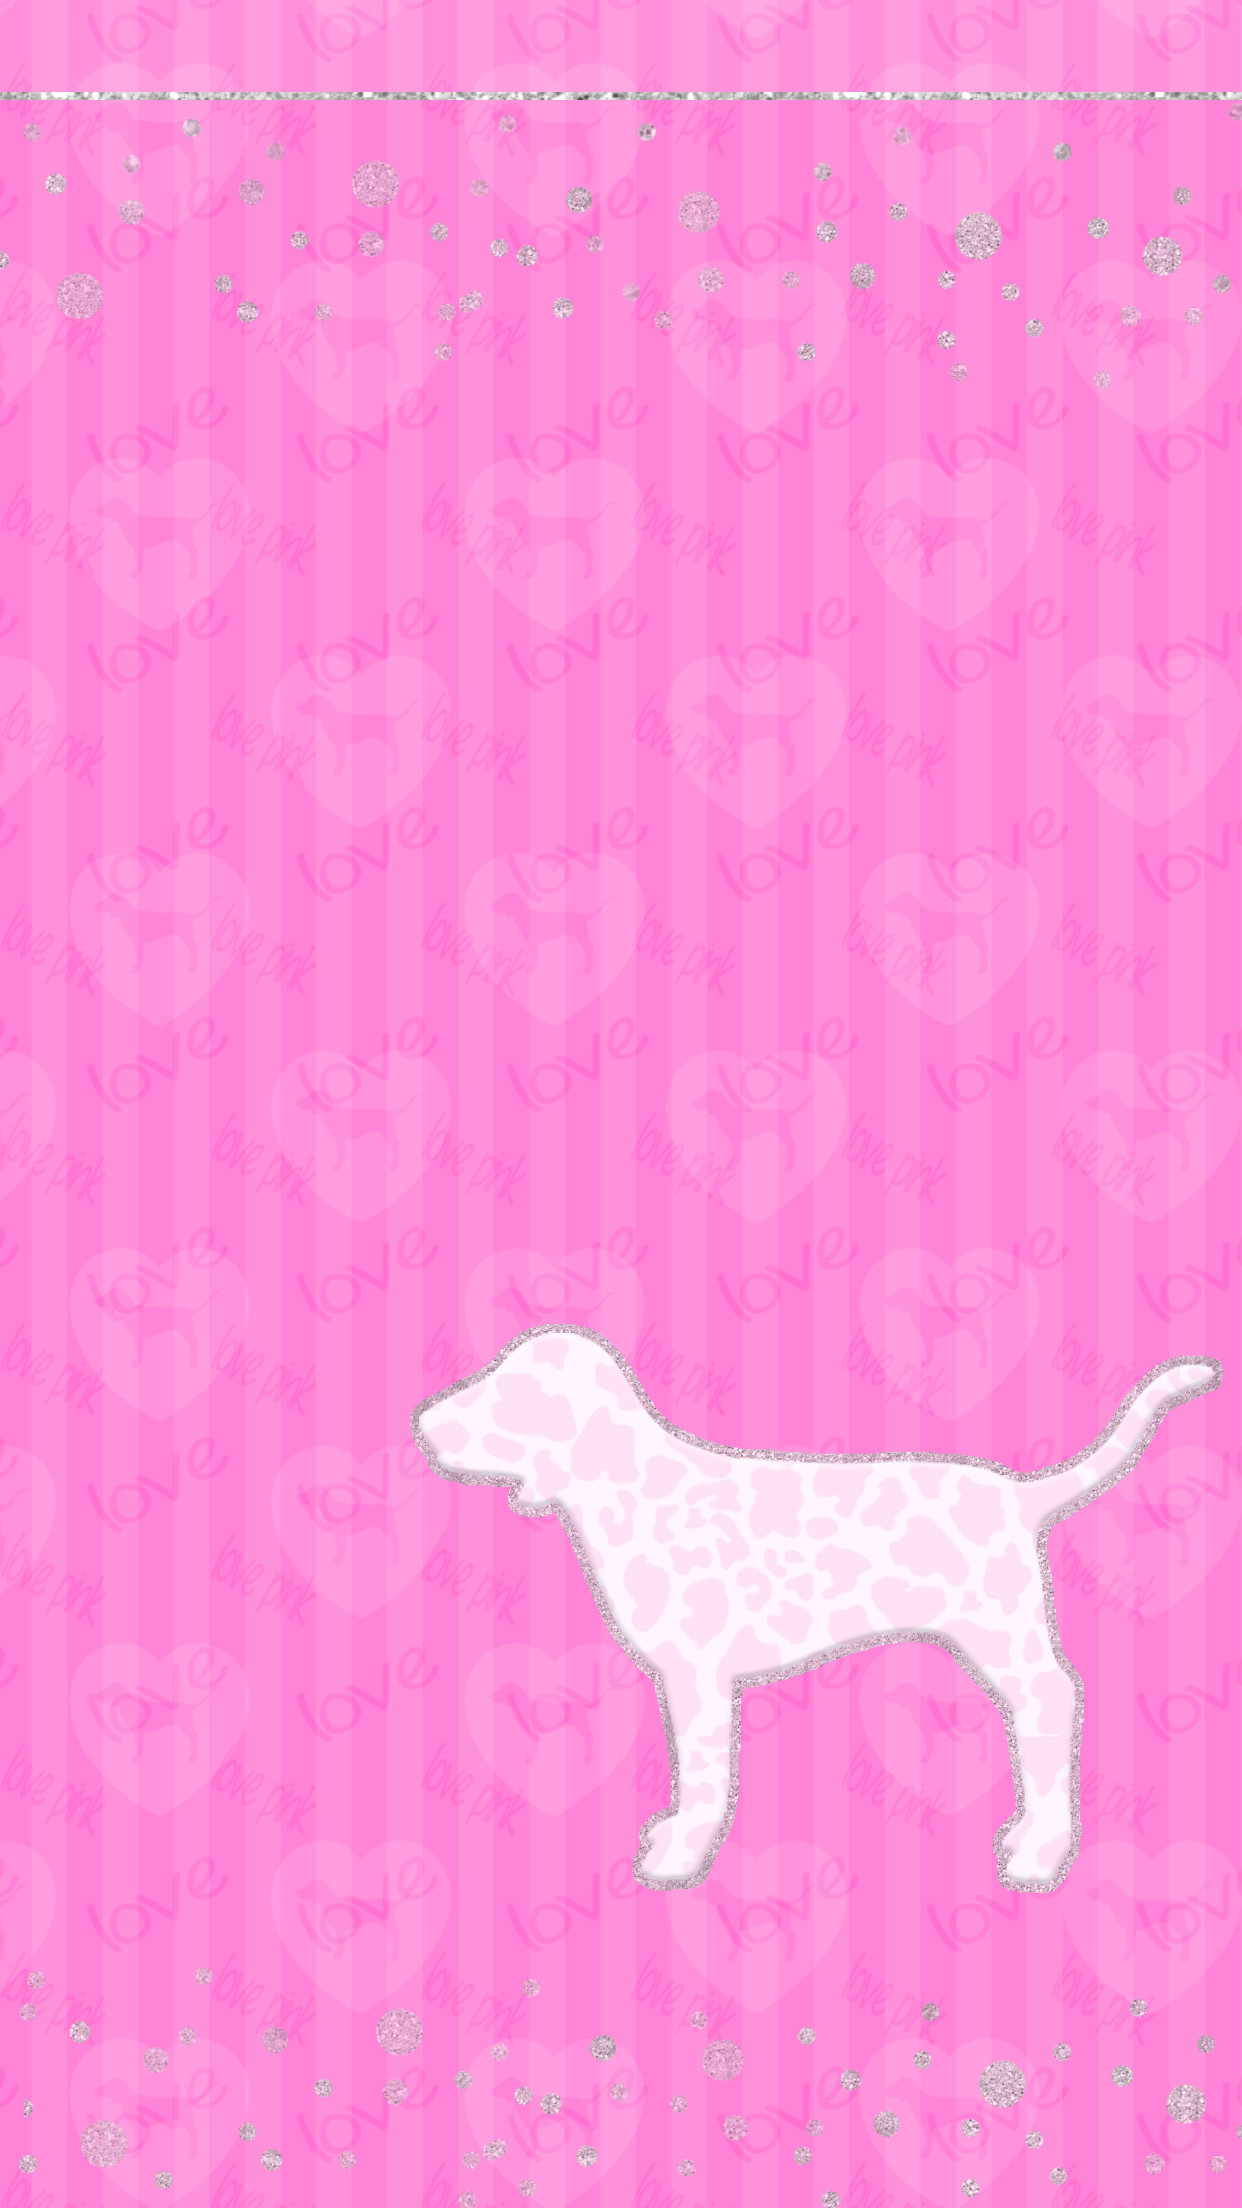 Cute Wallpapers, Phone Wallpapers, Iphone 2, Printer, Hello Kitty, Shelves,  Walls, Funds, Pictures. PINK